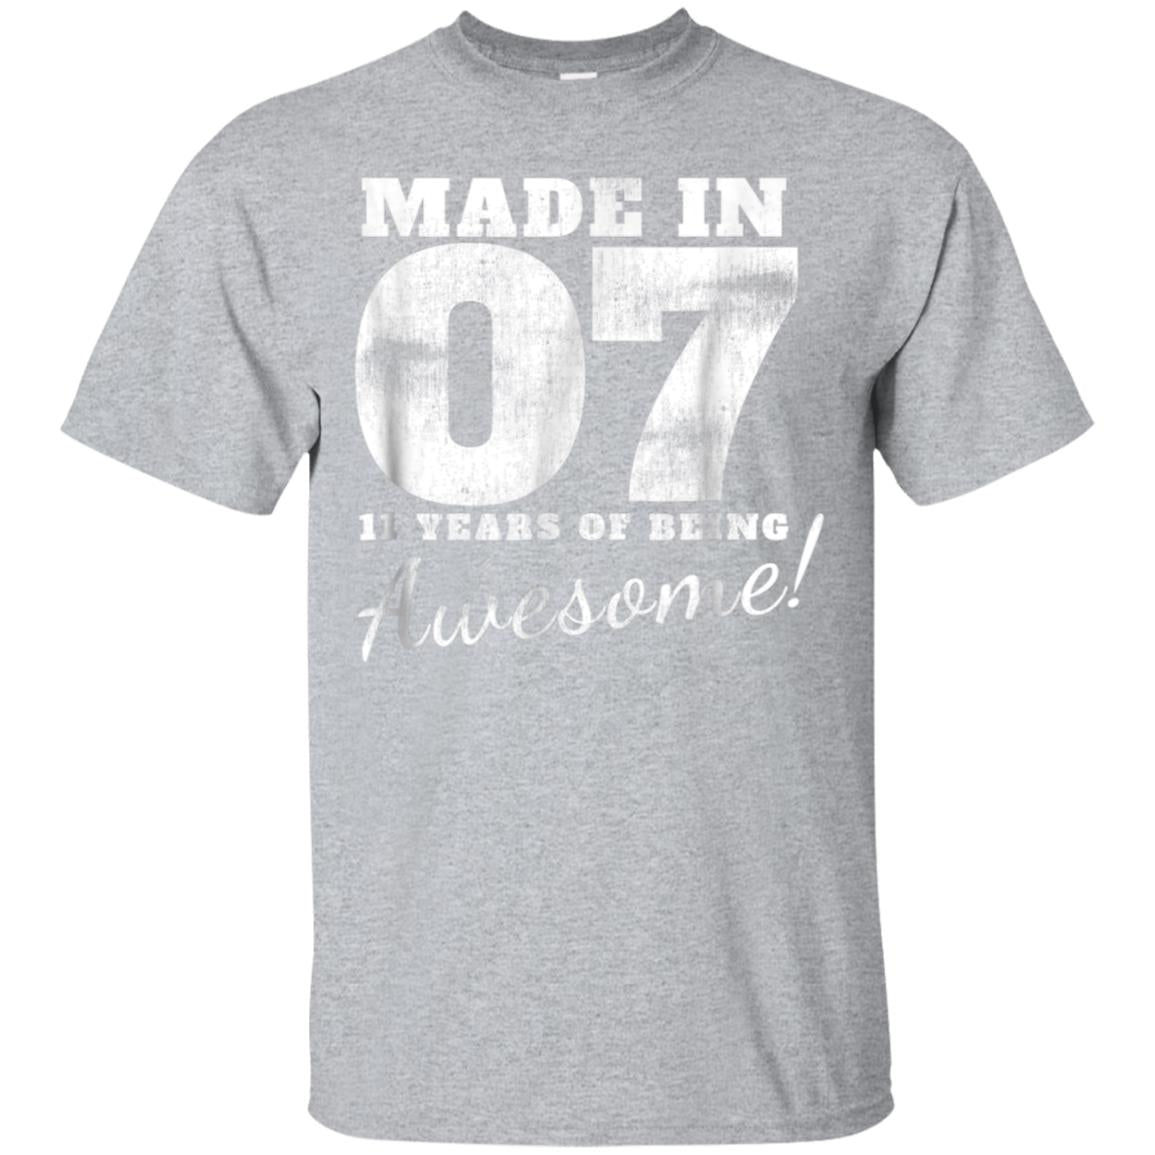 11th Birthday Boy 11 Year Old Gifts Made In 2007 Shirt 99promocode